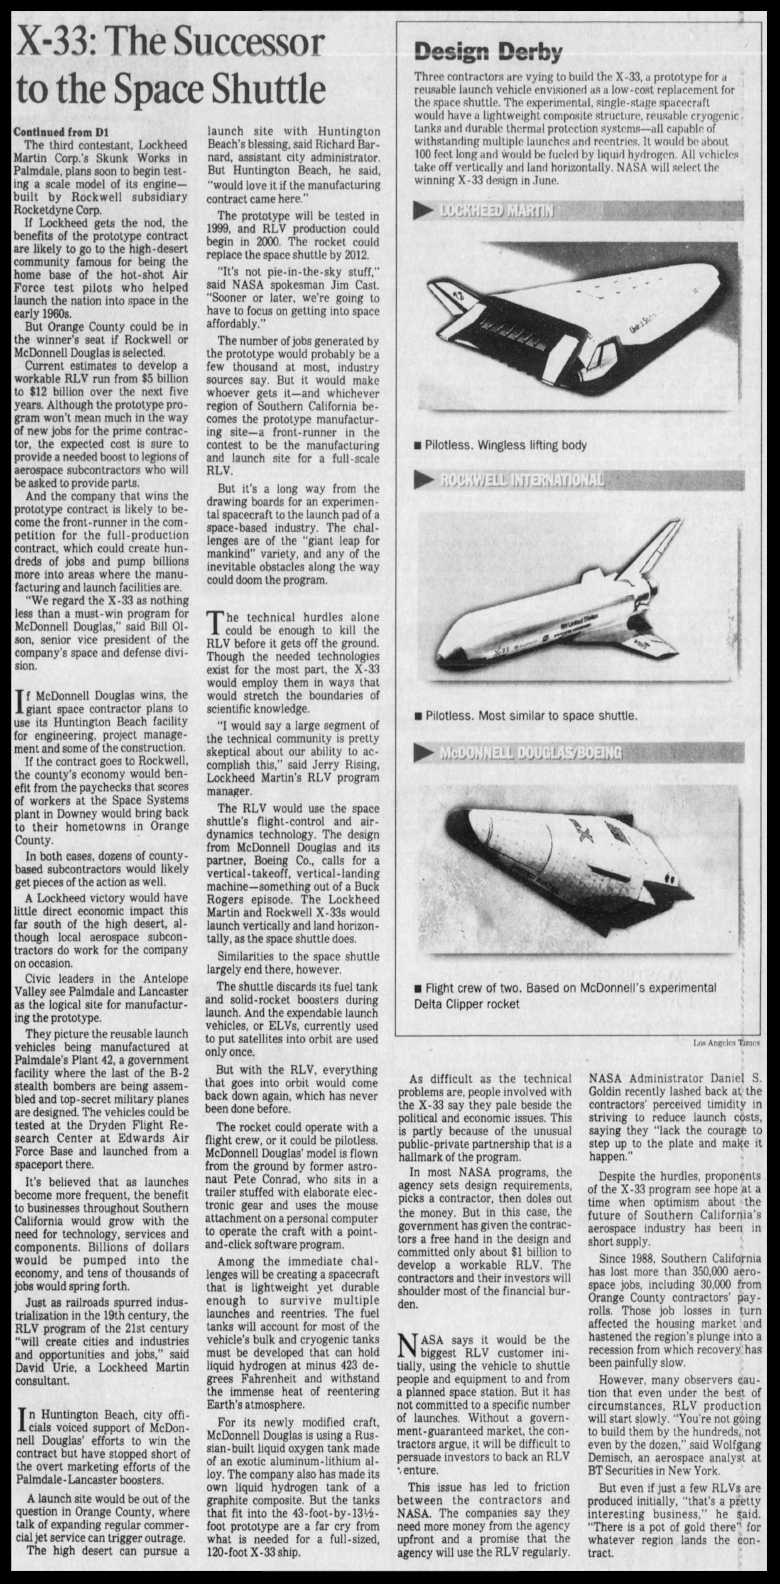 The Los Angeles Times, Tuesday March 19, 1996